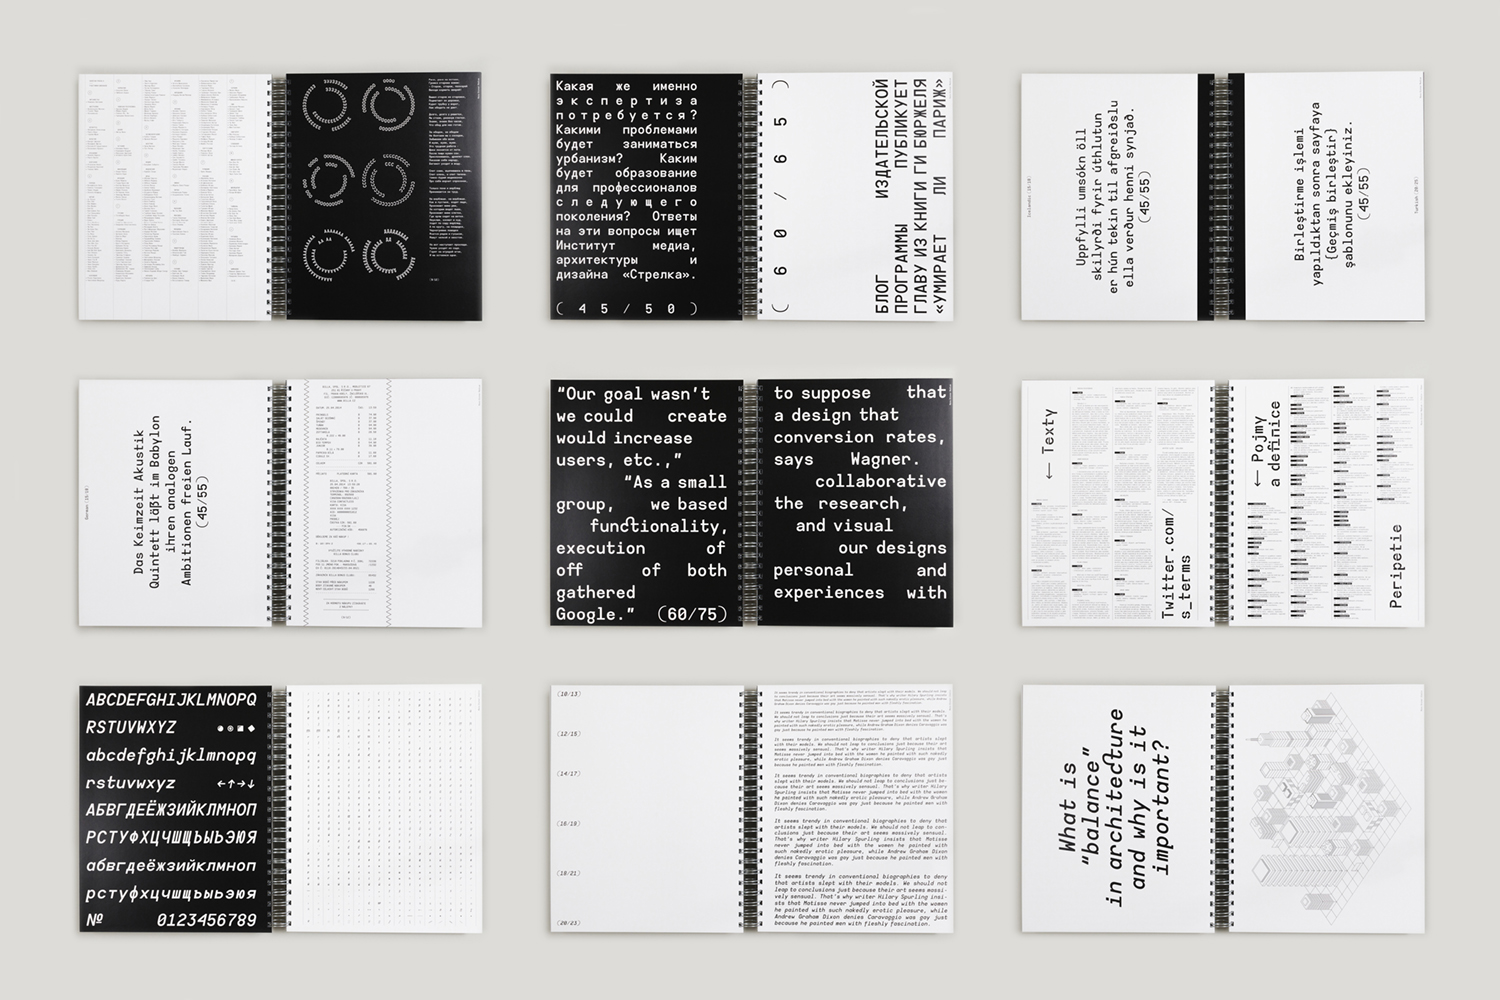 Specimen – All typeface is not available purchase